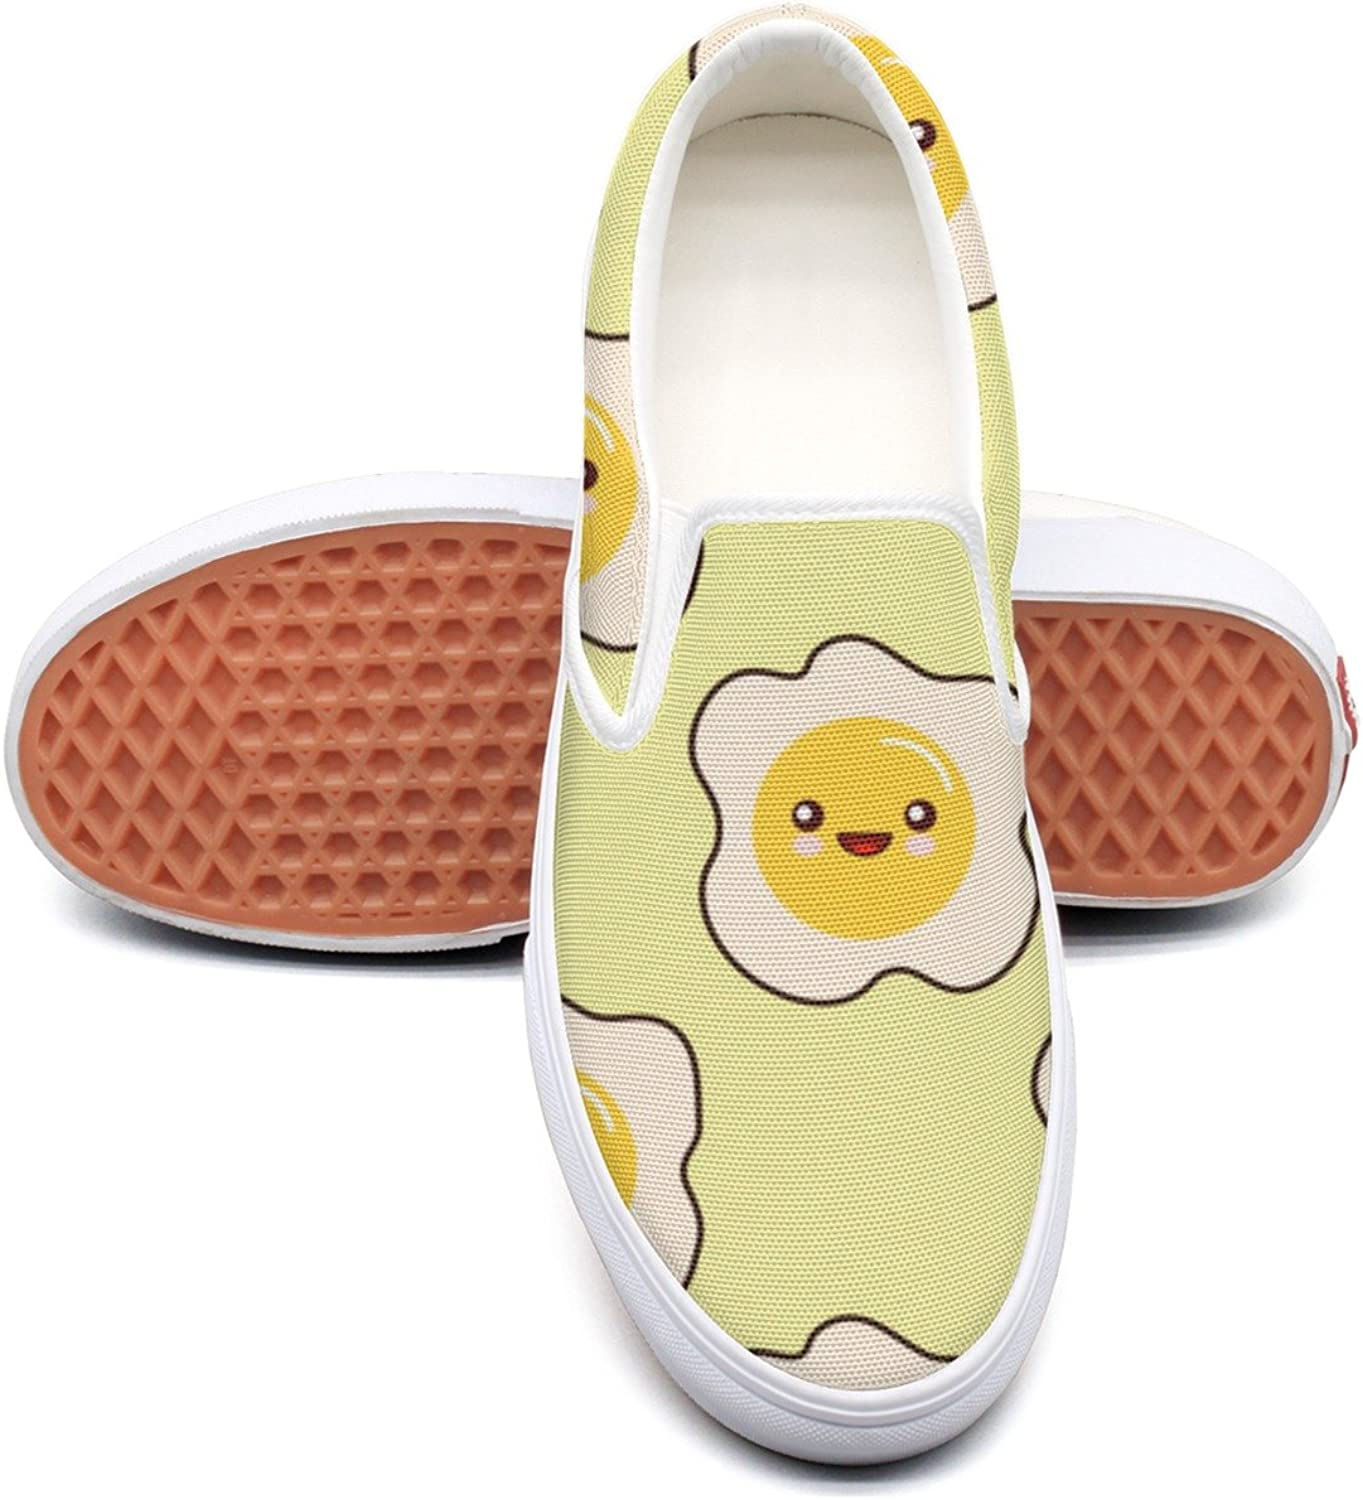 Kawai Fried Egg Faces Womens Fashion Canvas Low Top Cool Basketball shoes For Women